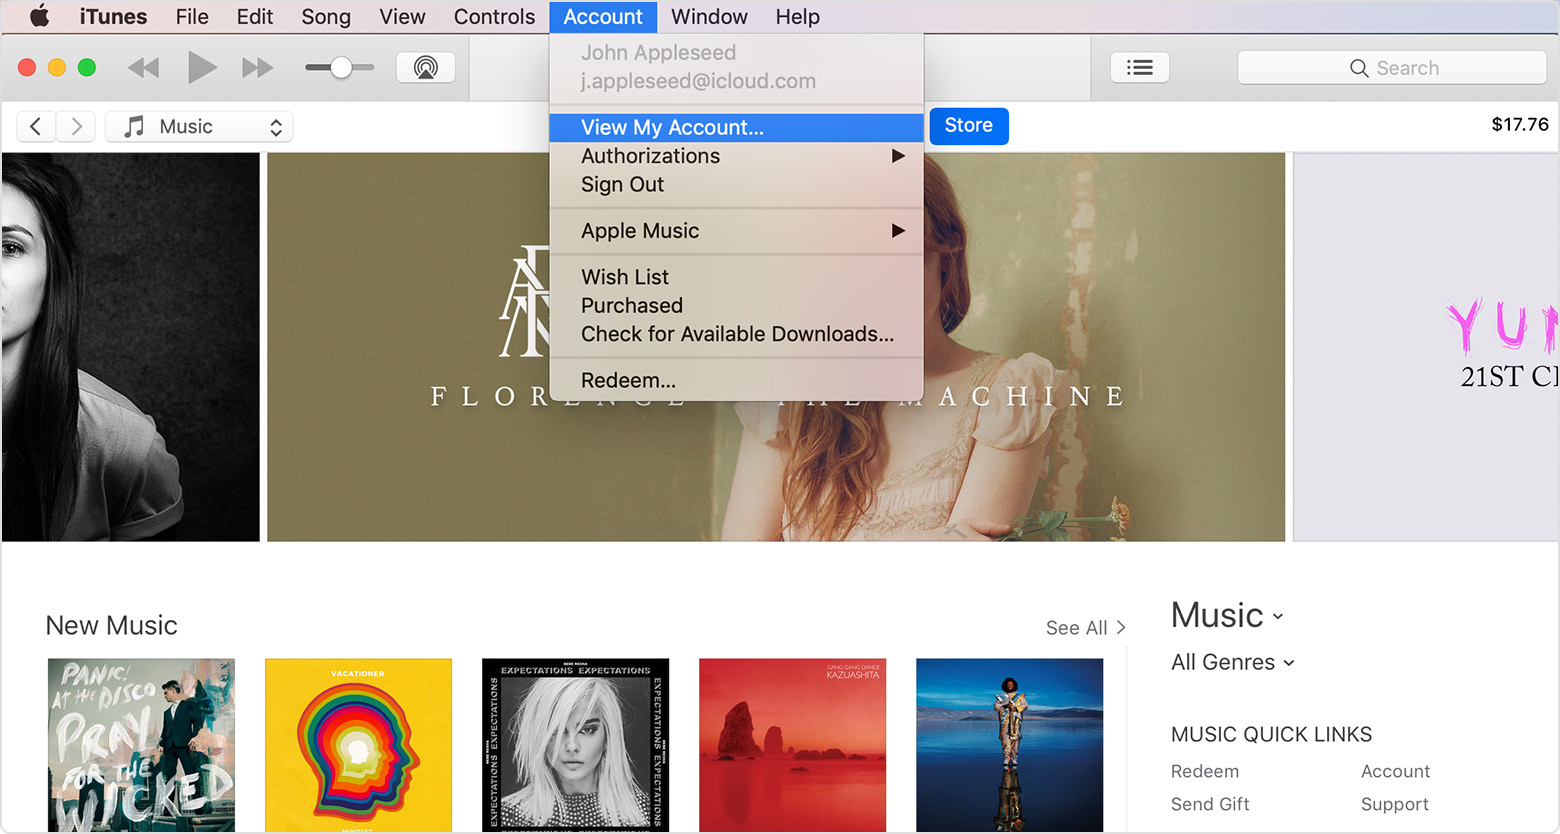 The Account menu in iTunes with View My Account selected. An iTunes Store window is open in the background.